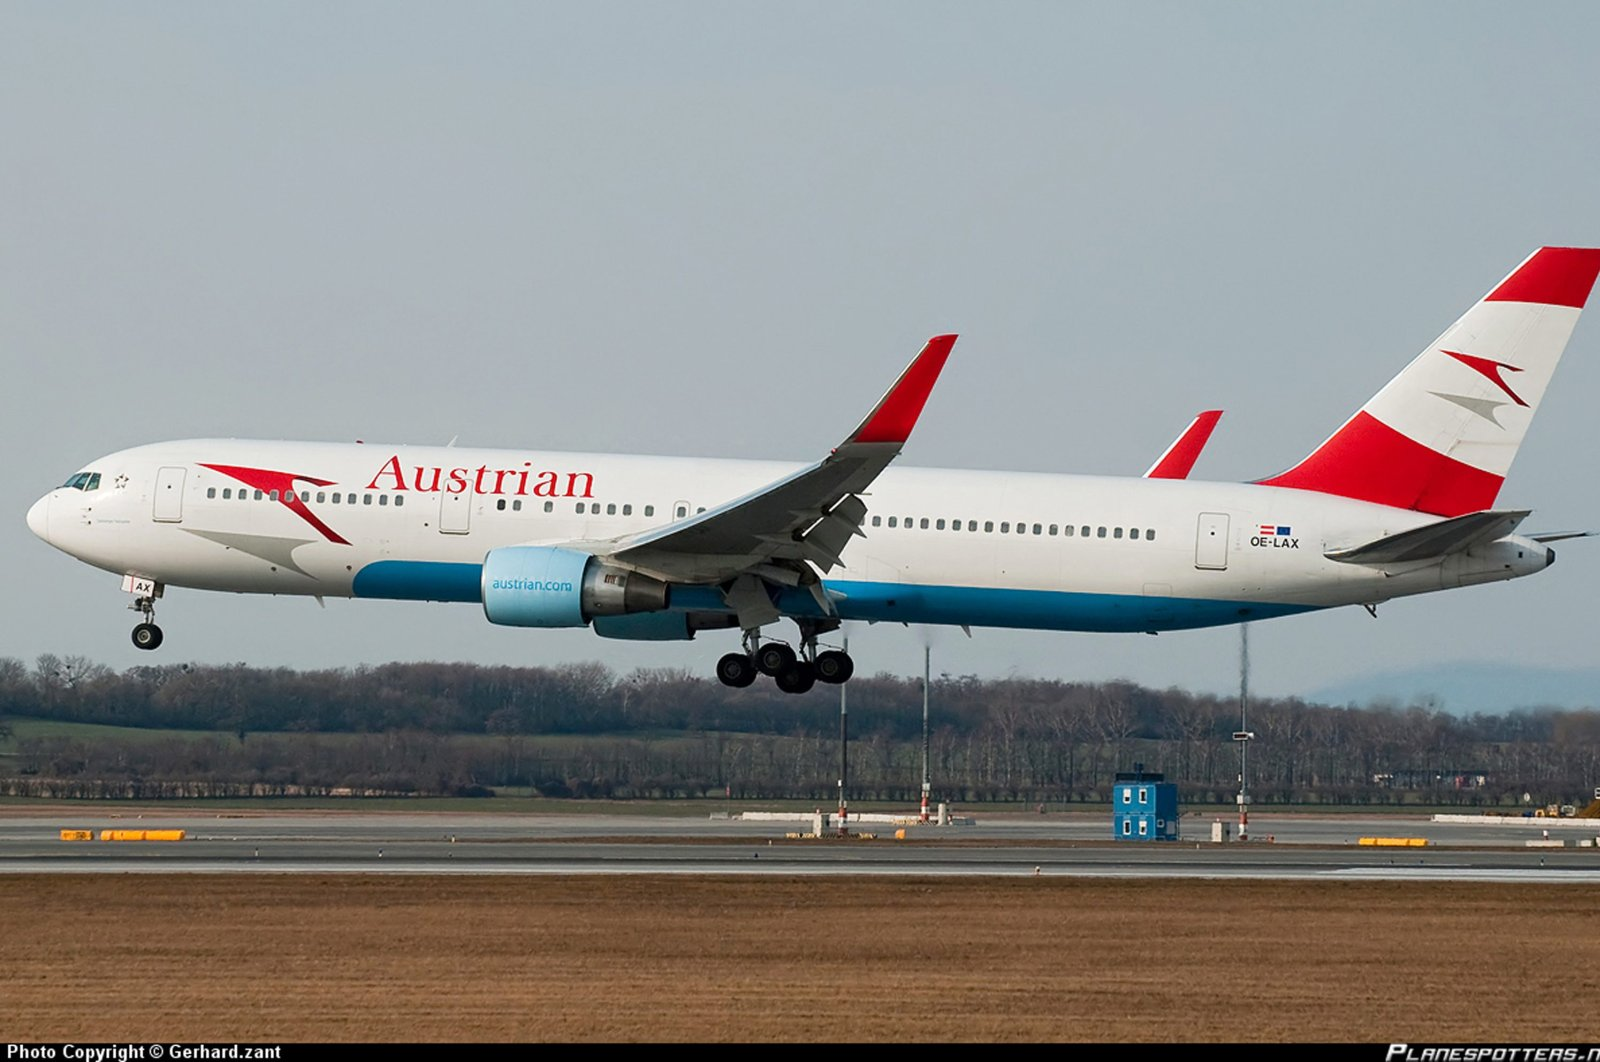 An Austrian Airlines passenger plane seen in this file photo from Nov. 27, 2013.